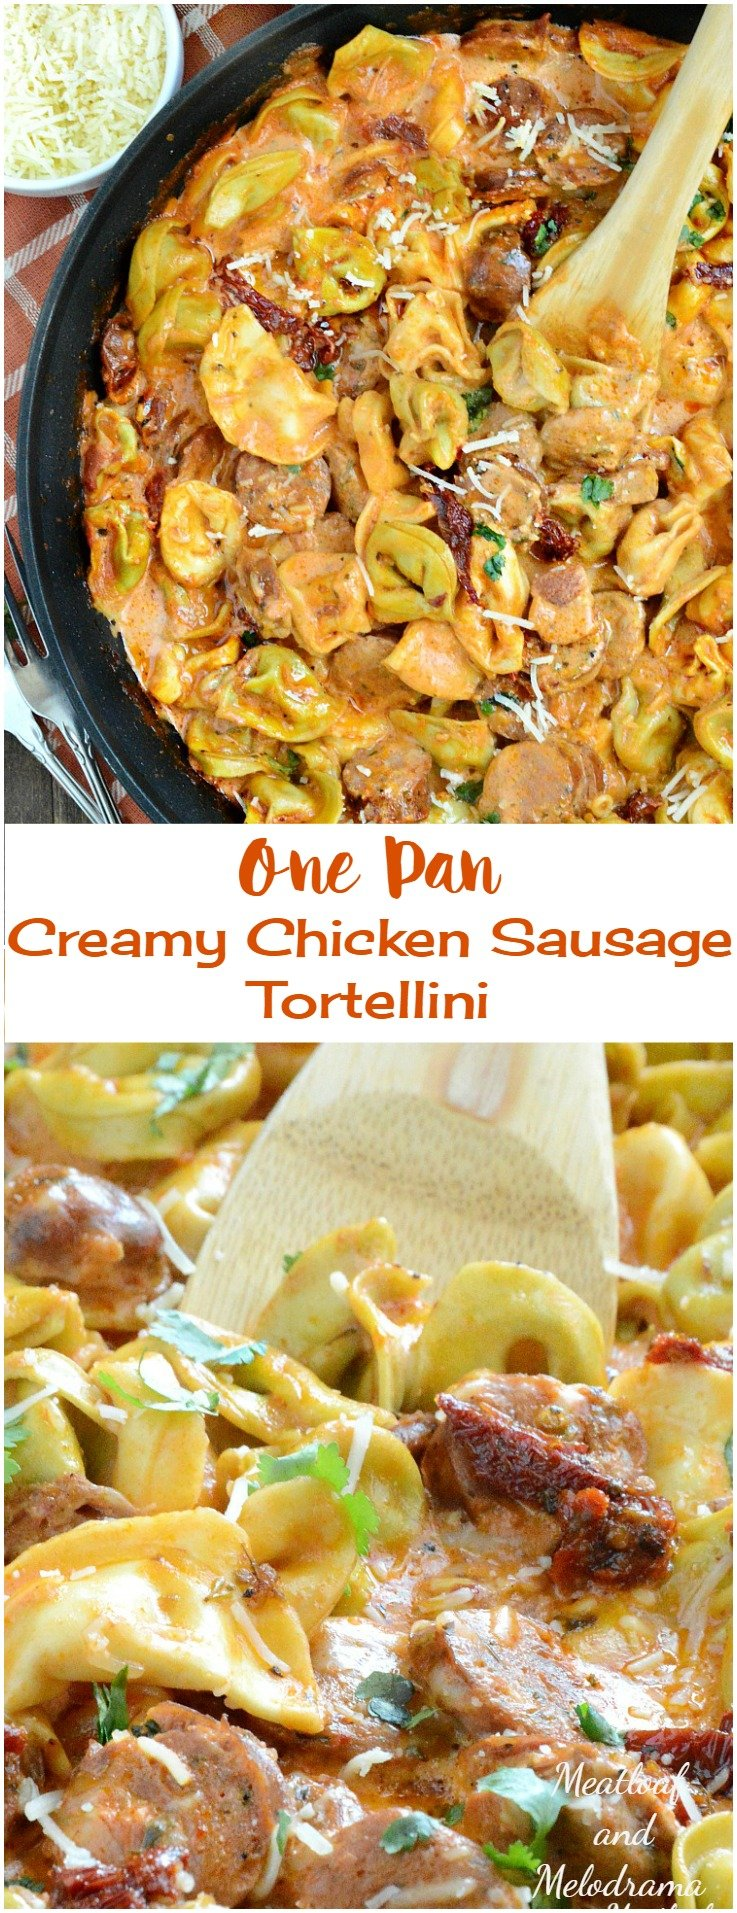 One Pan Creamy Chicken Sausage Tortellini with Sund Dried Tomatoes